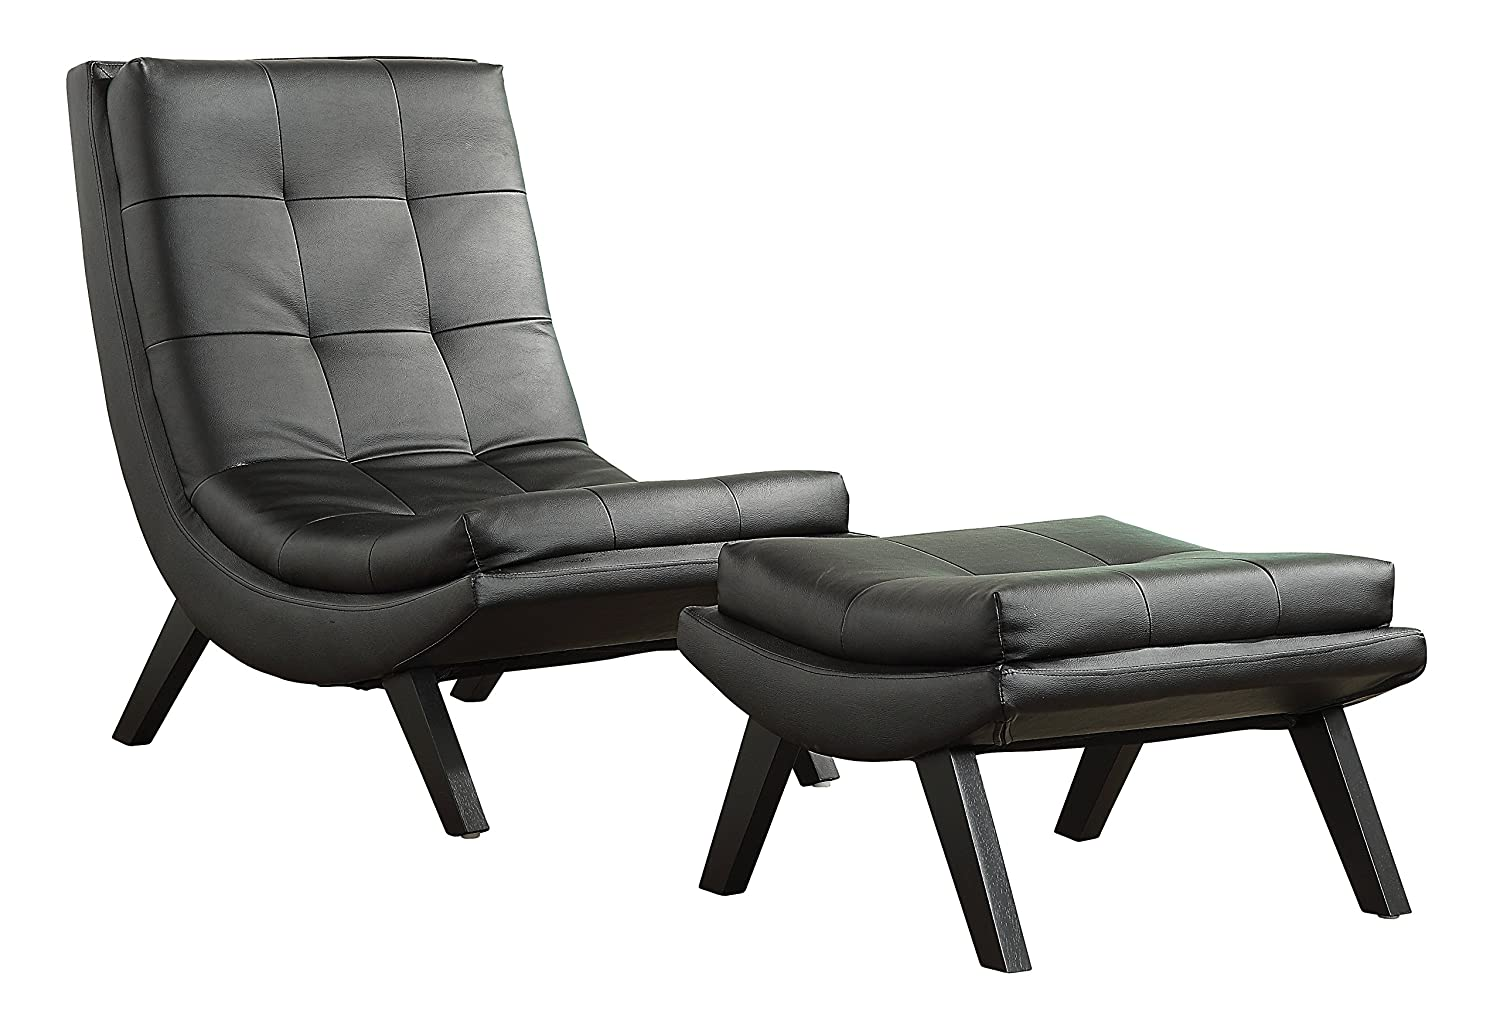 Captivating Amazon.com: AVE SIX Tustin Faux Leather Lounge Chair And Ottoman Set With  Solid Wood Legs, Black: Kitchen U0026 Dining